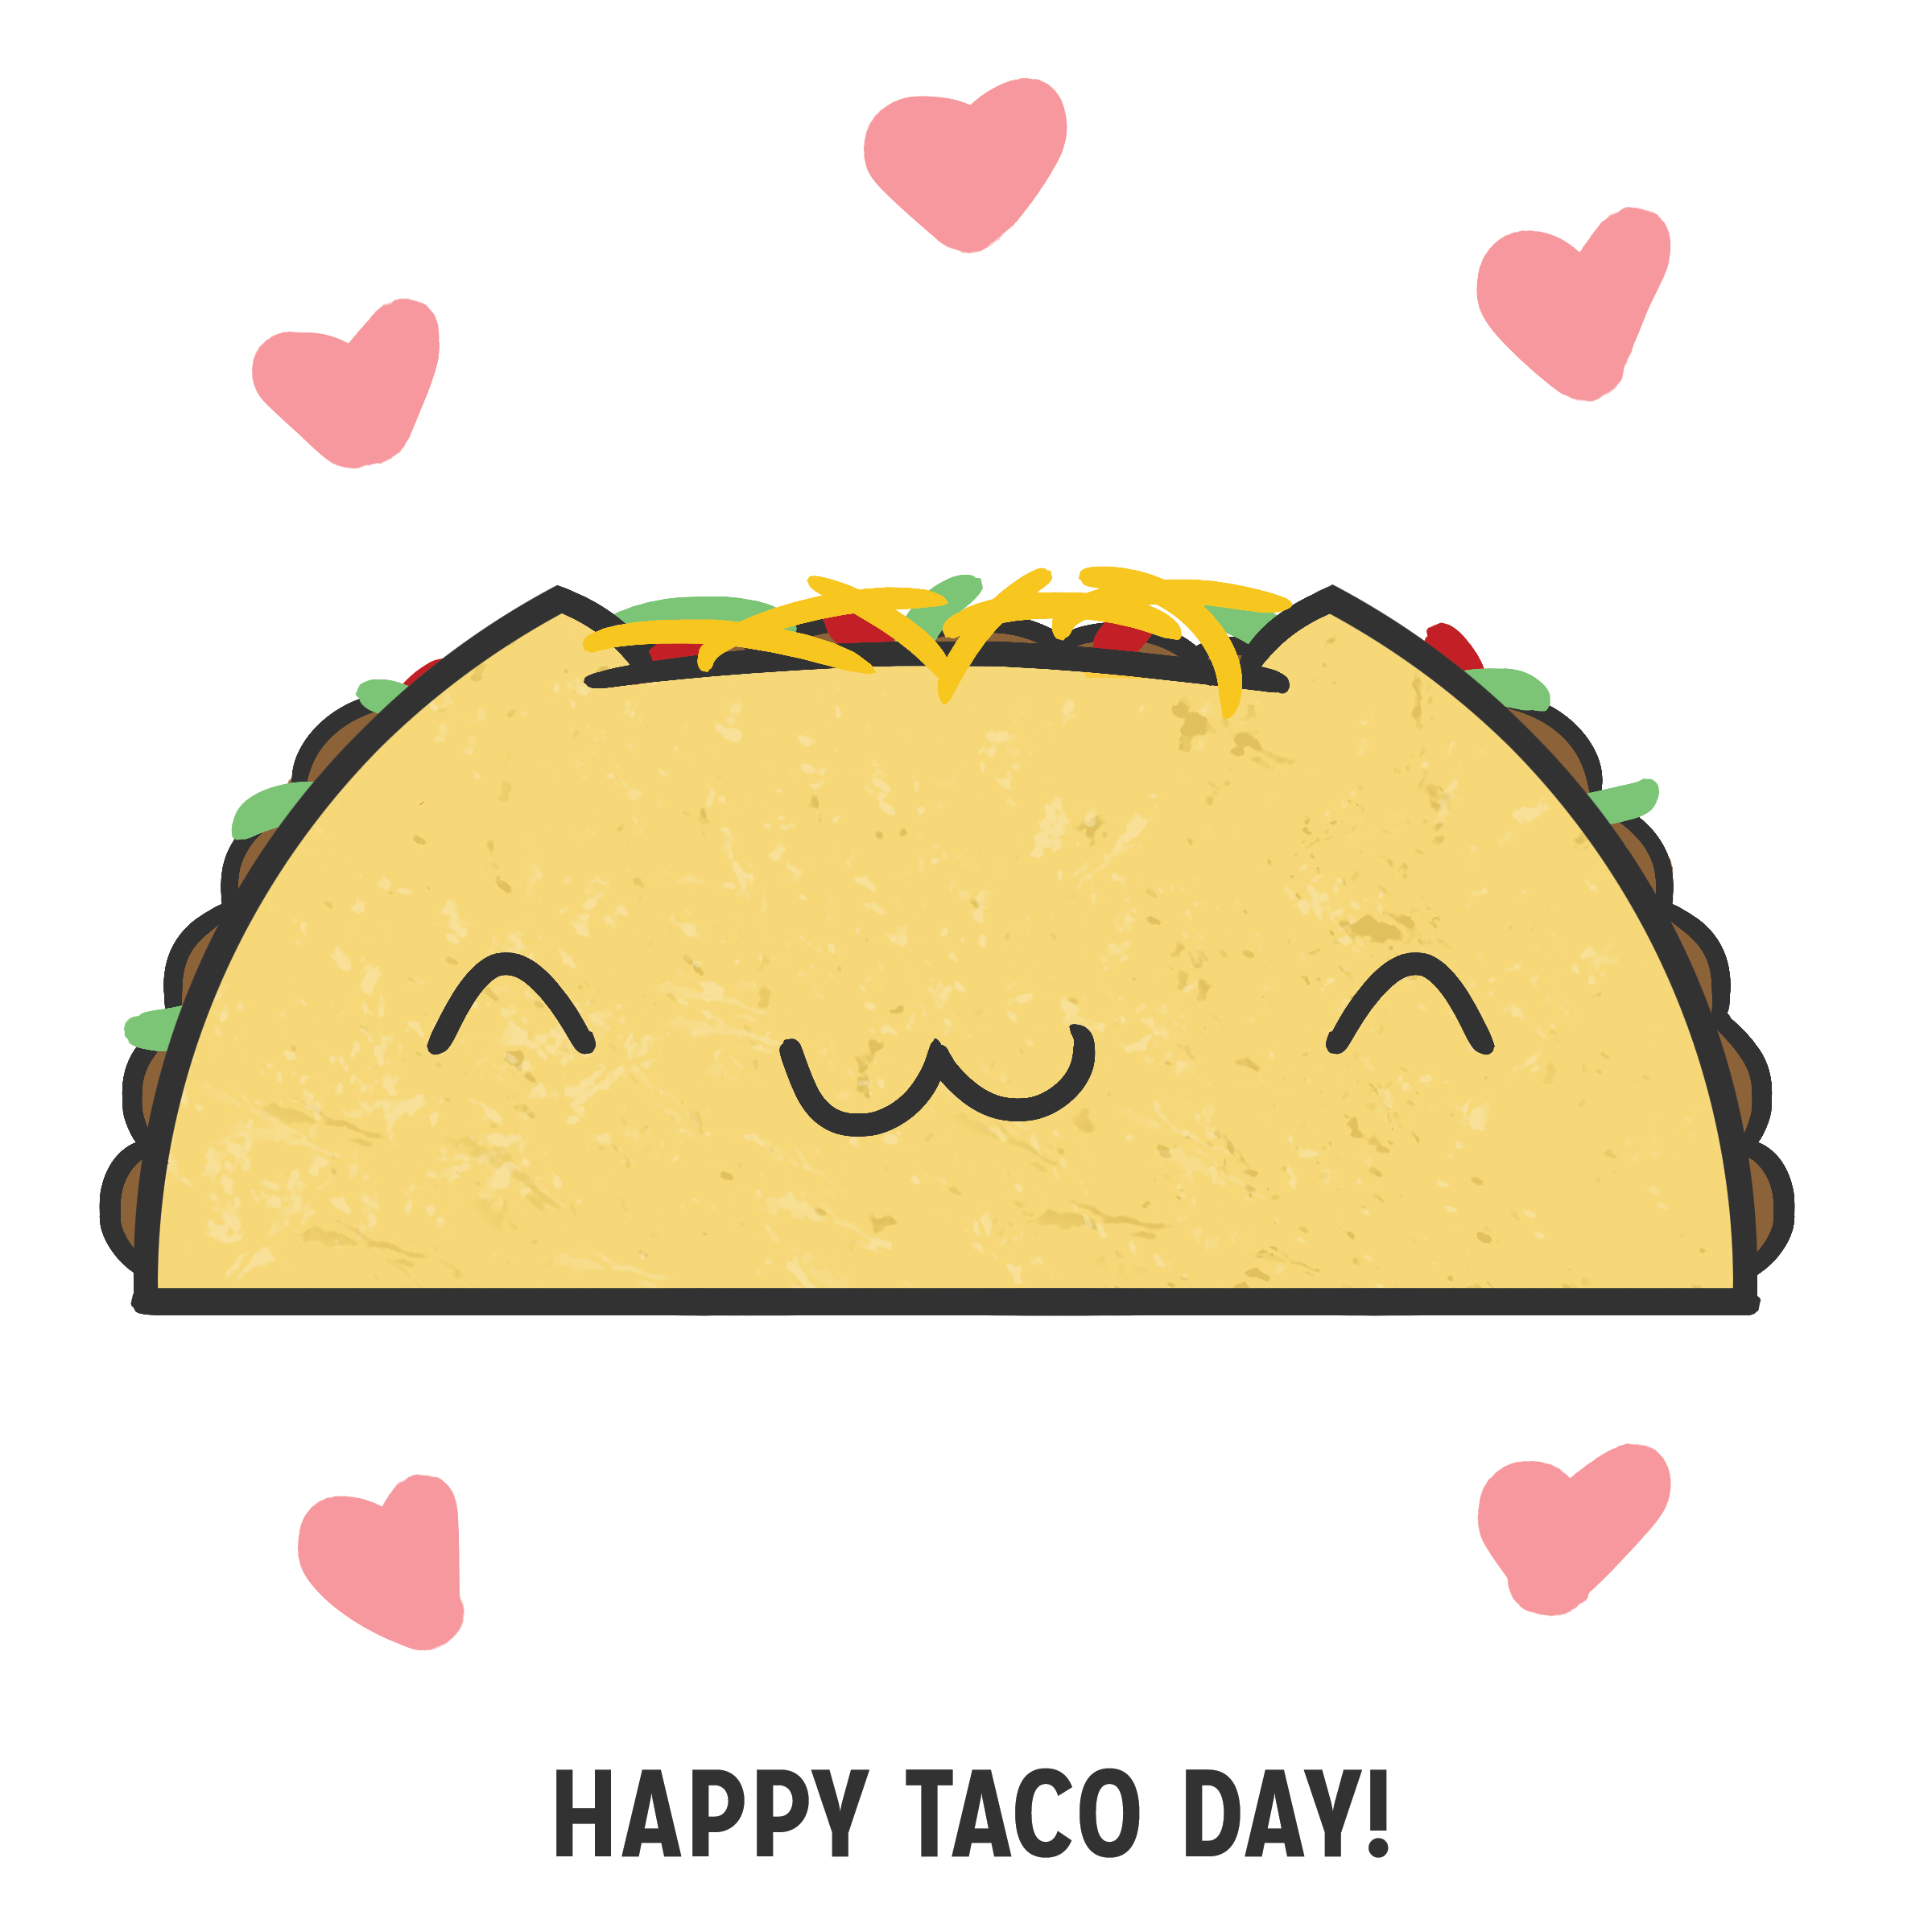 2400x2400 happy taco day! greetings !!!! tacos, taco drawing, happy taco